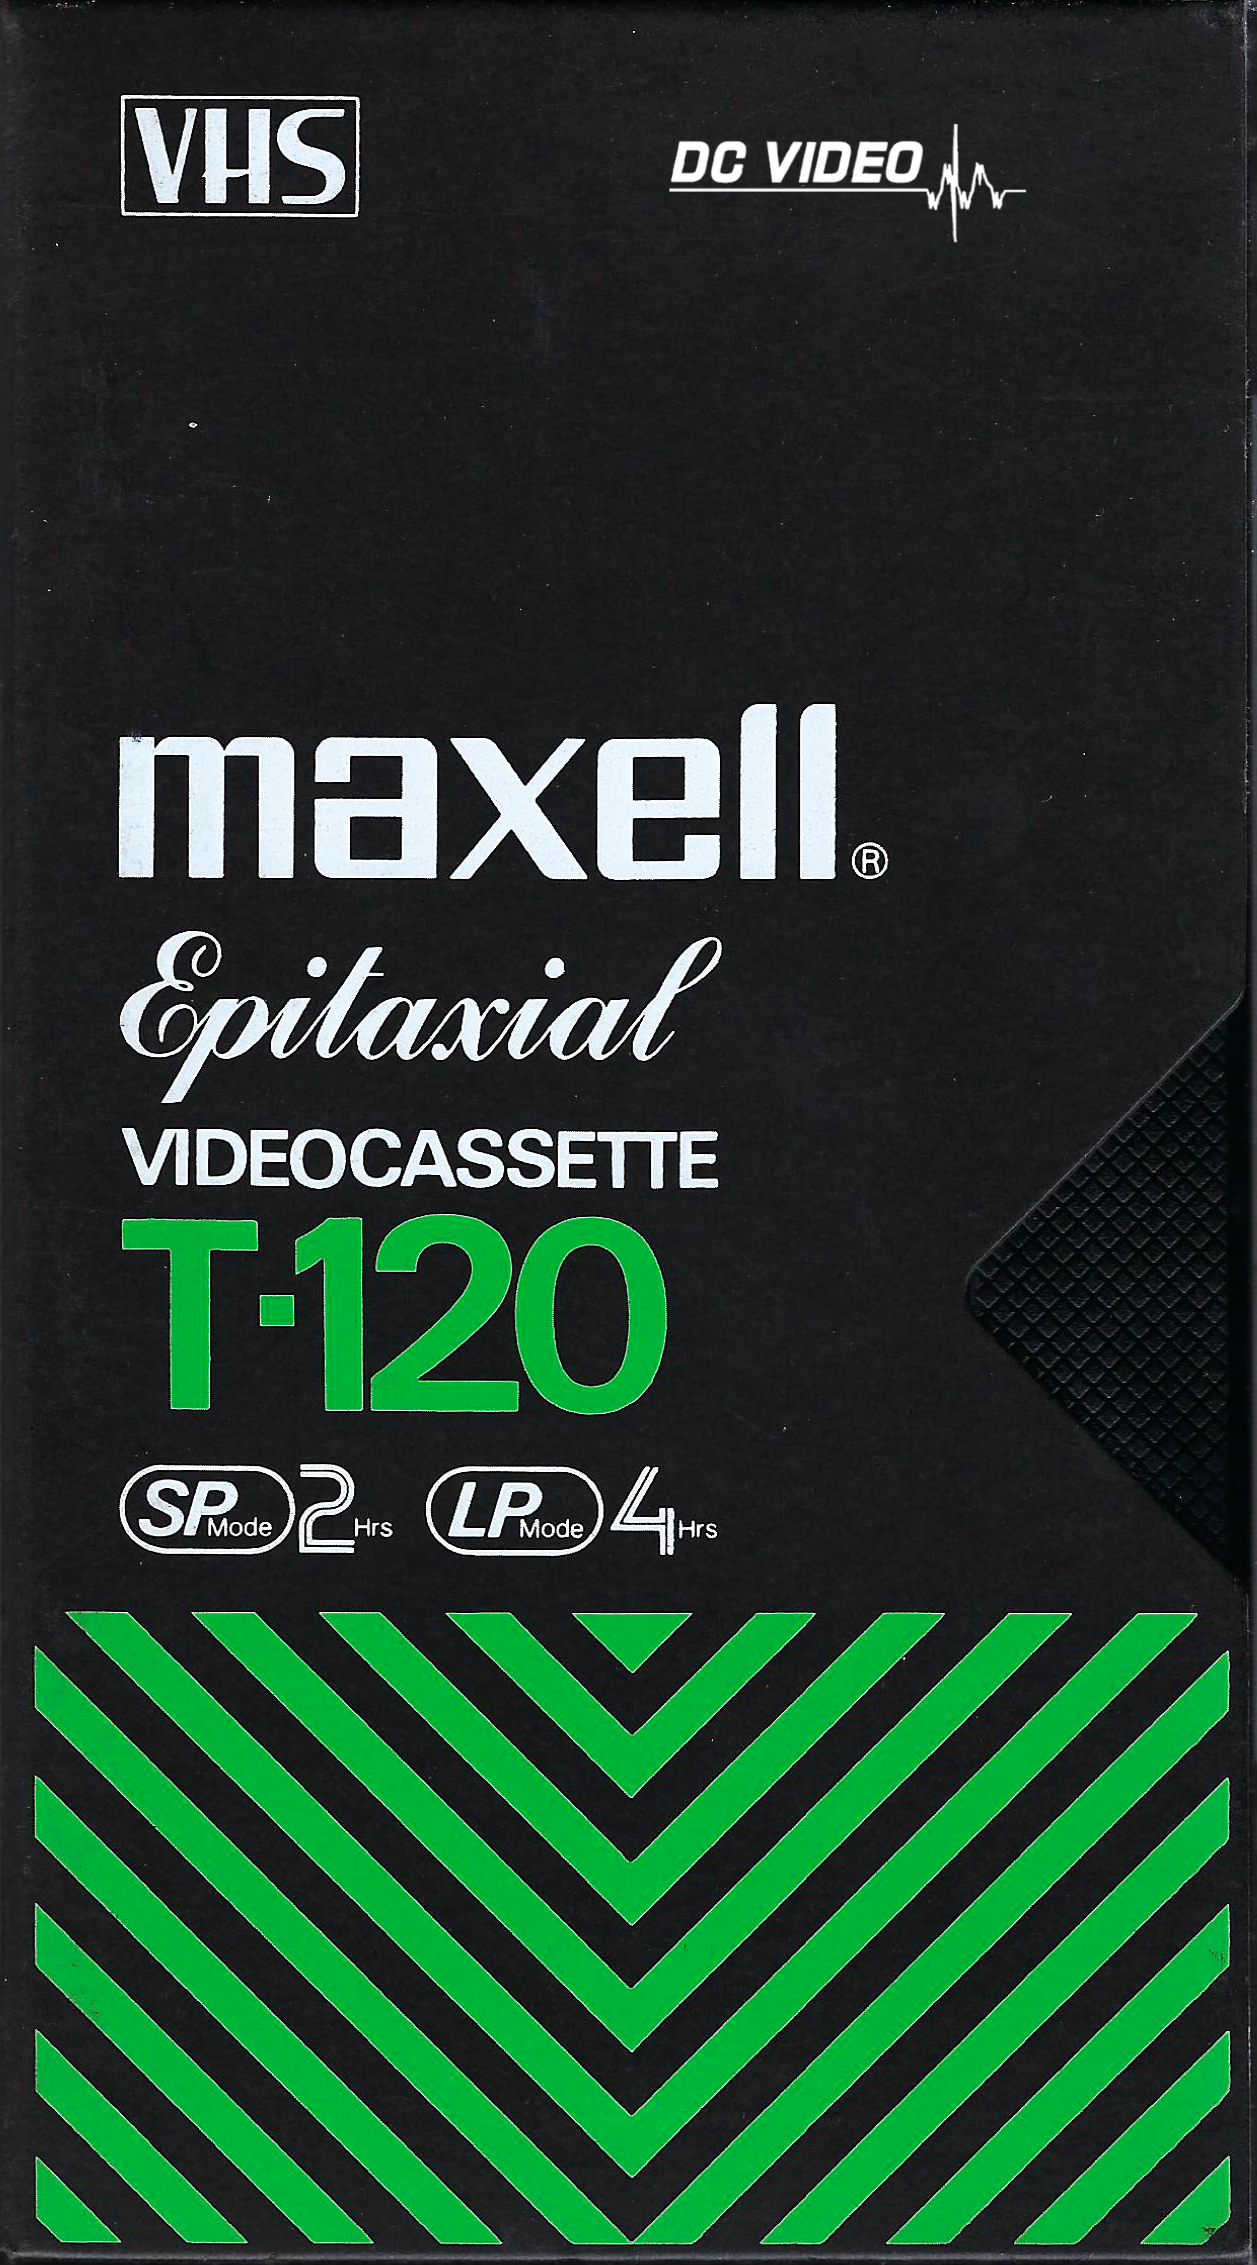 Maxell Epitaxial T120 VHS Green